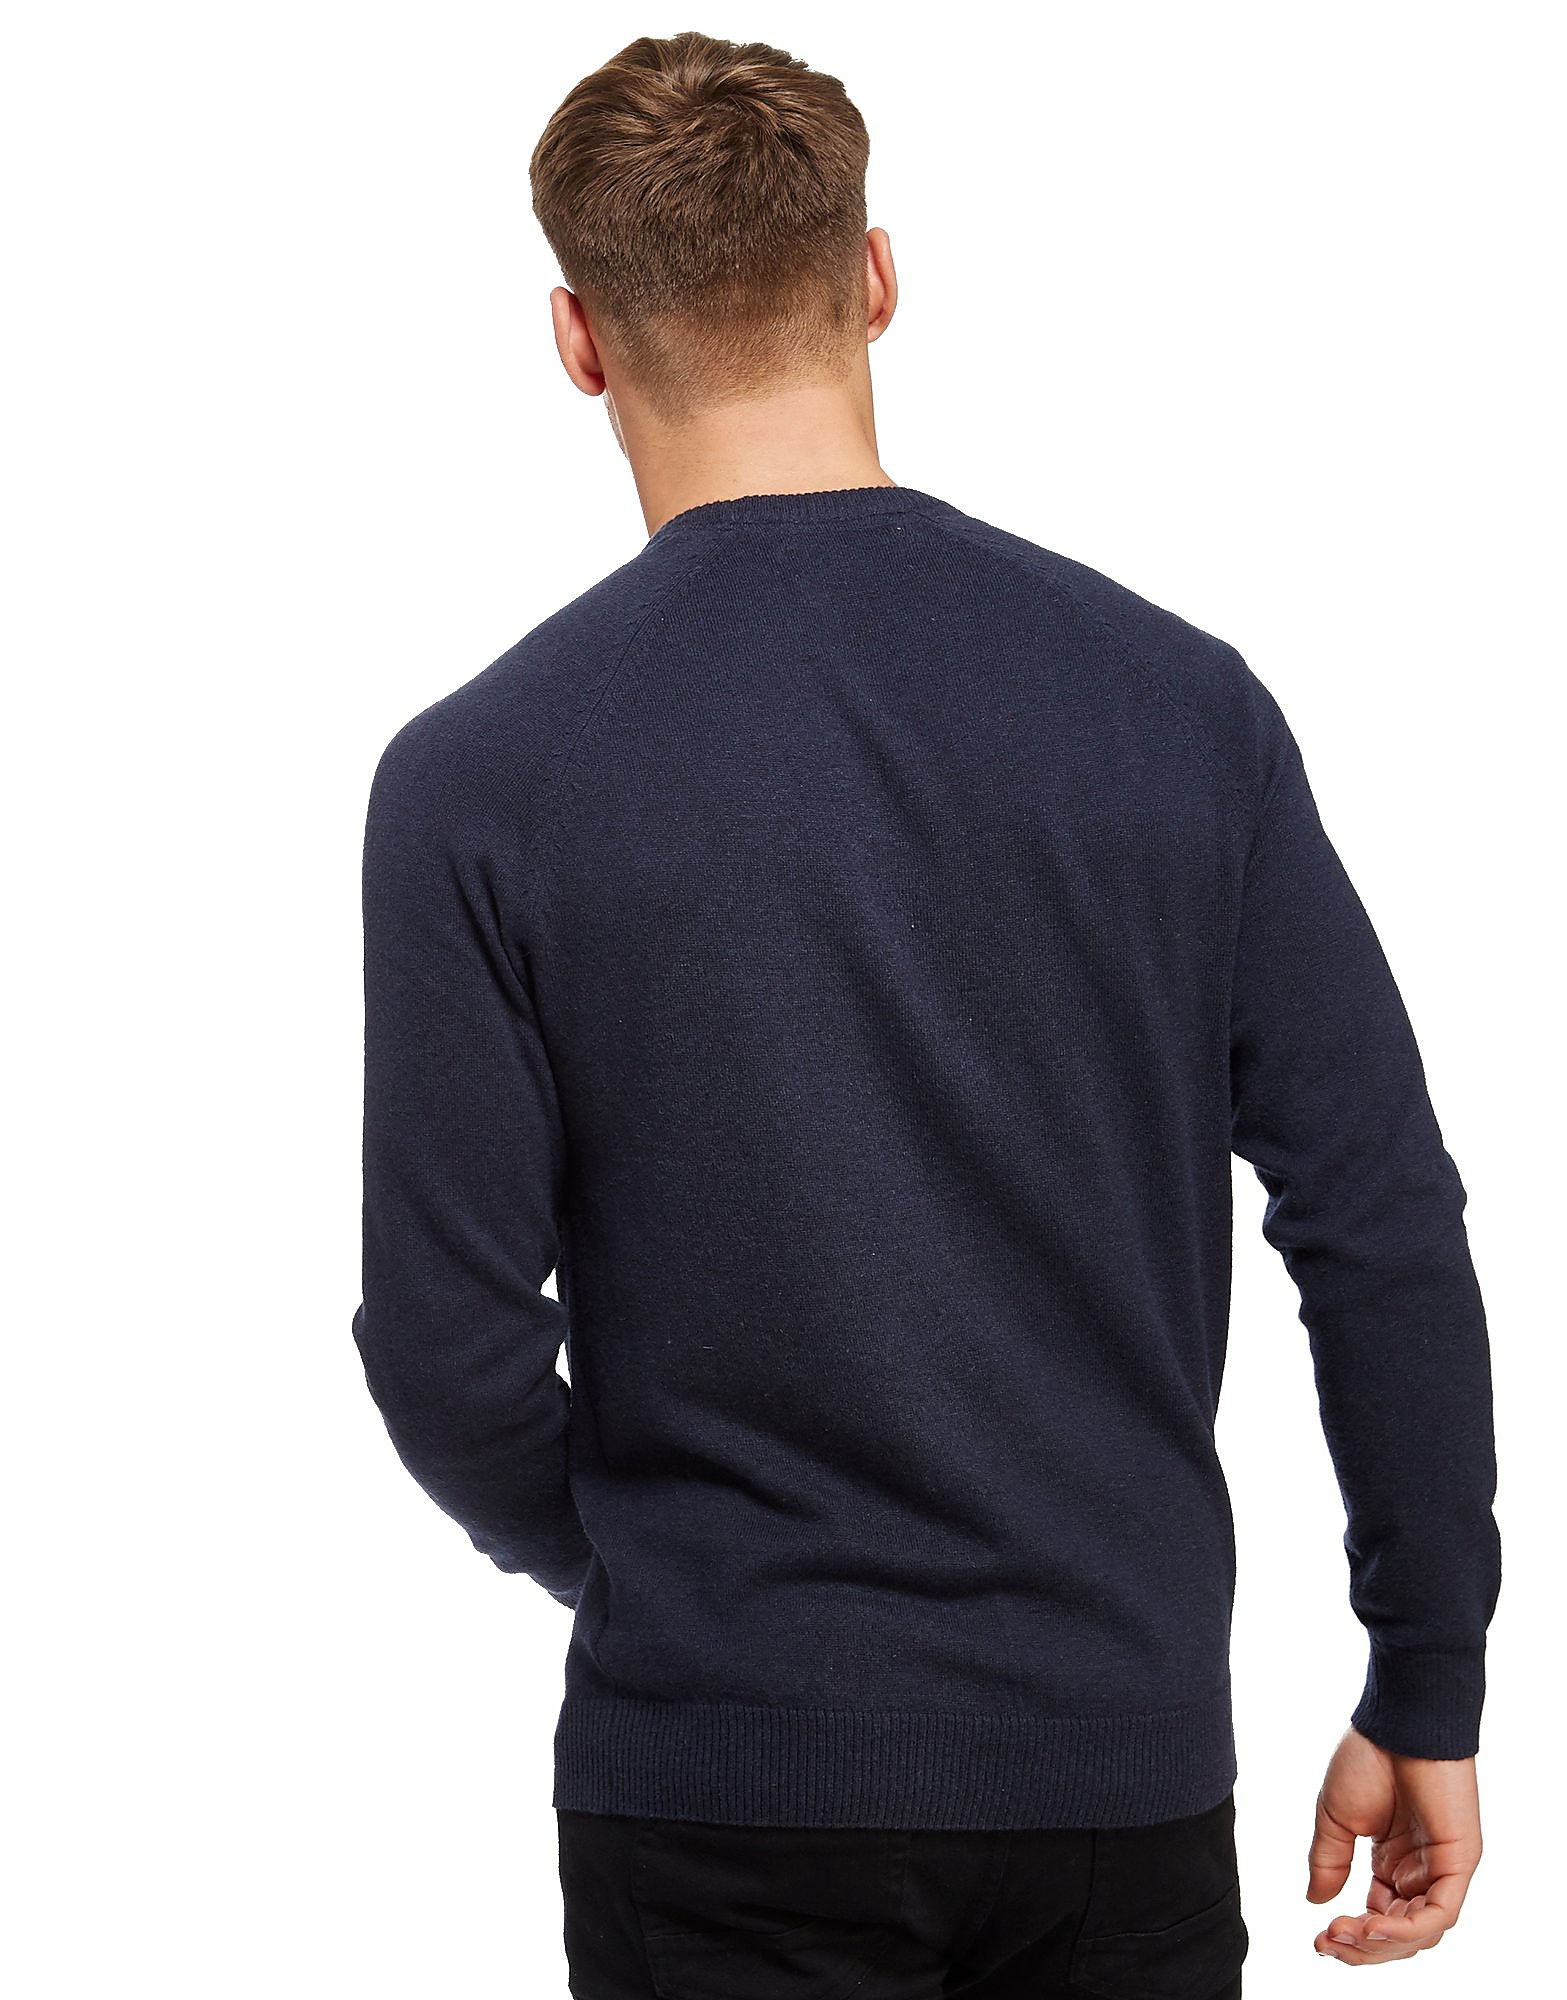 Original Penguin Crew Neck Sweater